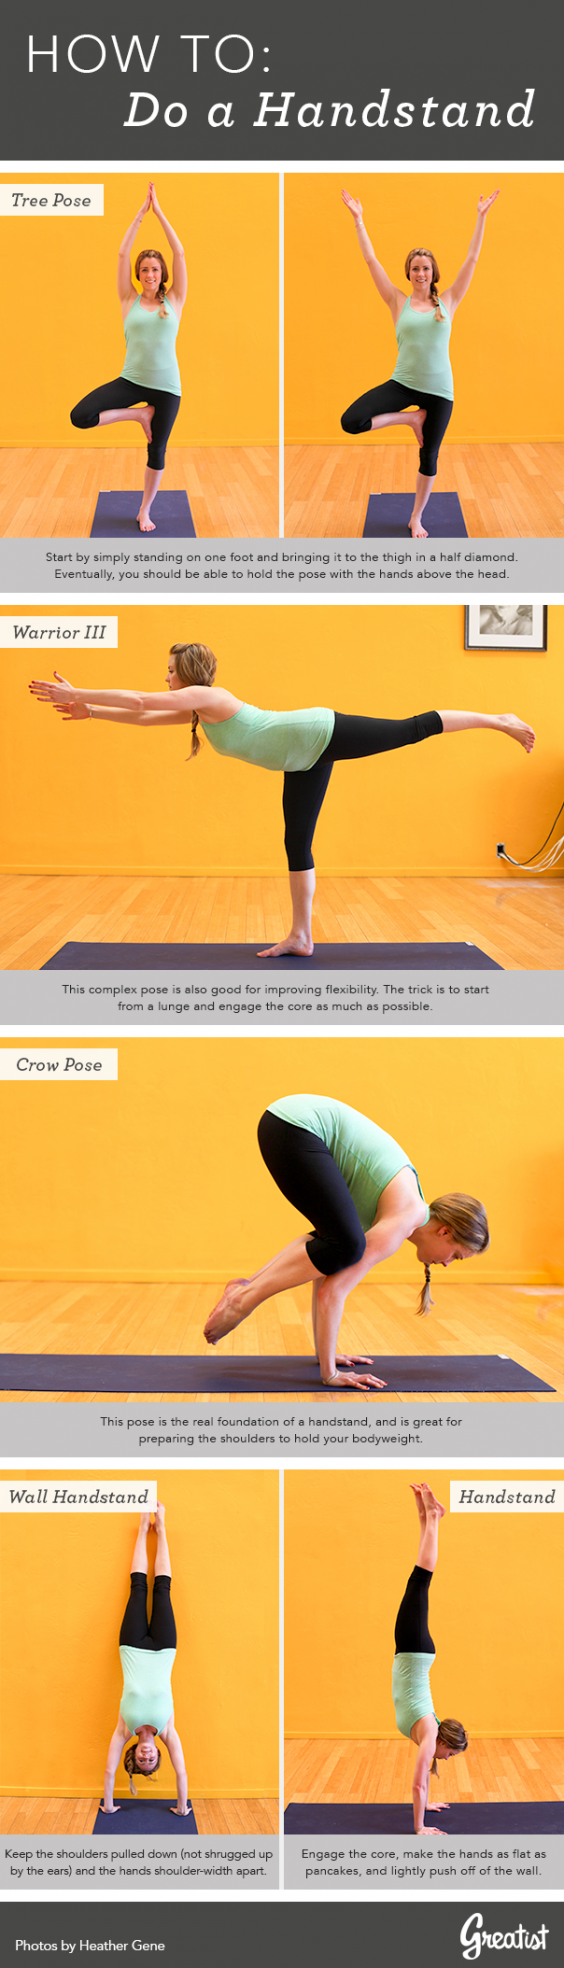 The Foolproof Plan to Nail a Handstand